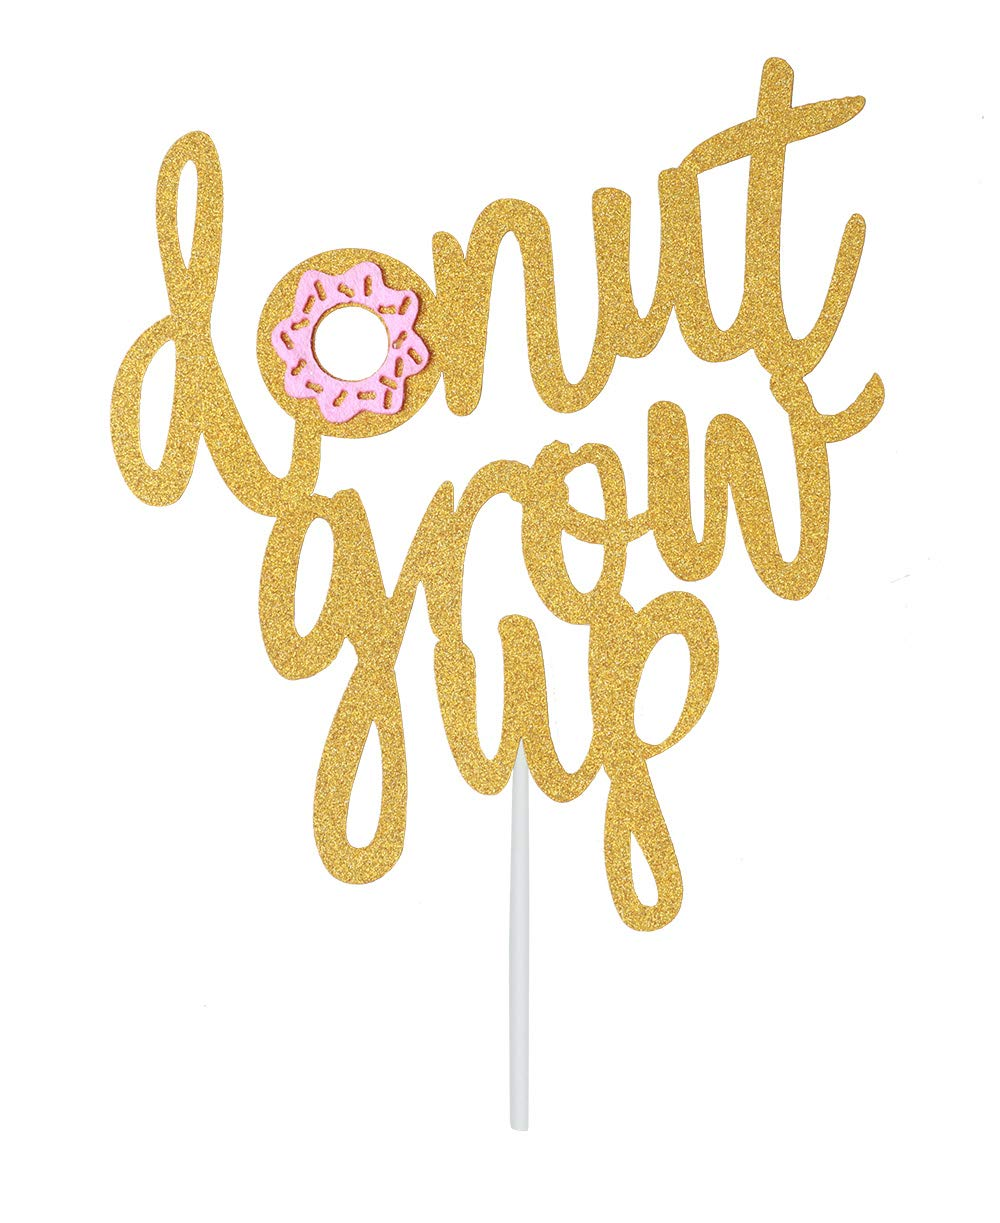 Topfun Double Sided Gold Glitter Donut Grow Up Cake Topper for Baby Shower Kids First Birthday Party Decorations